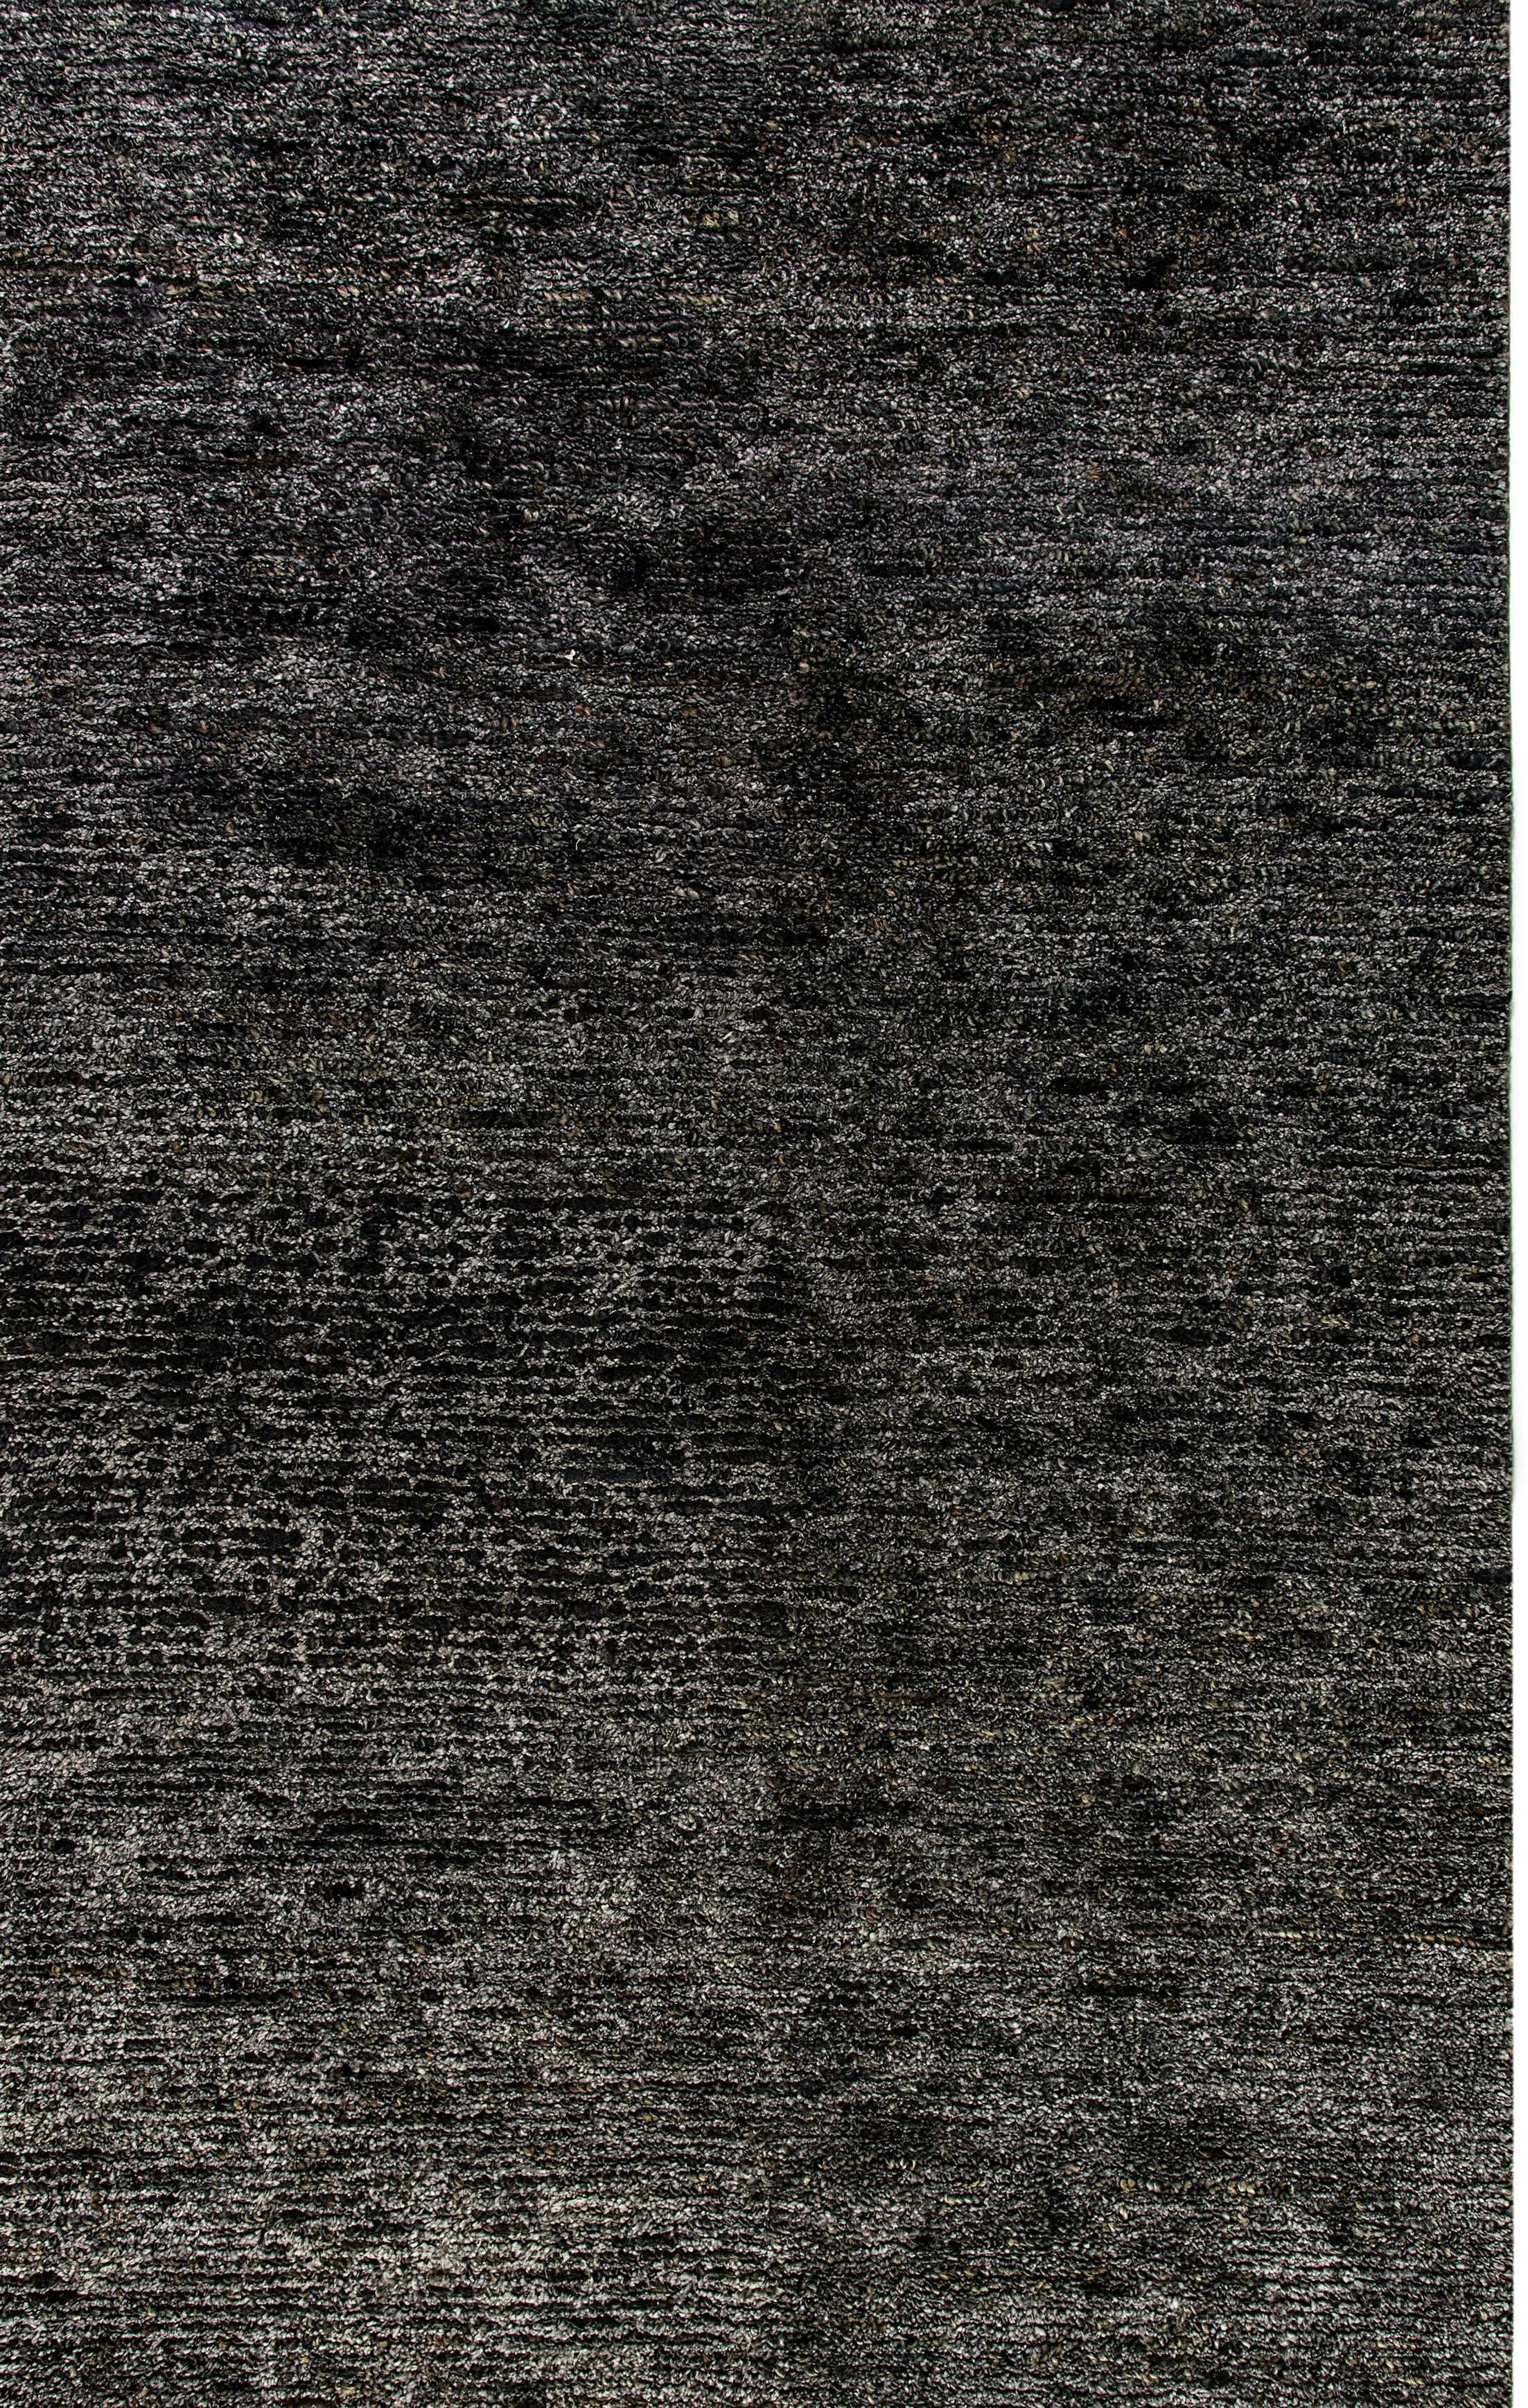 Gem Hand-Woven Charcoal Area Rug Rug Size: Rectangle 5' x 8'